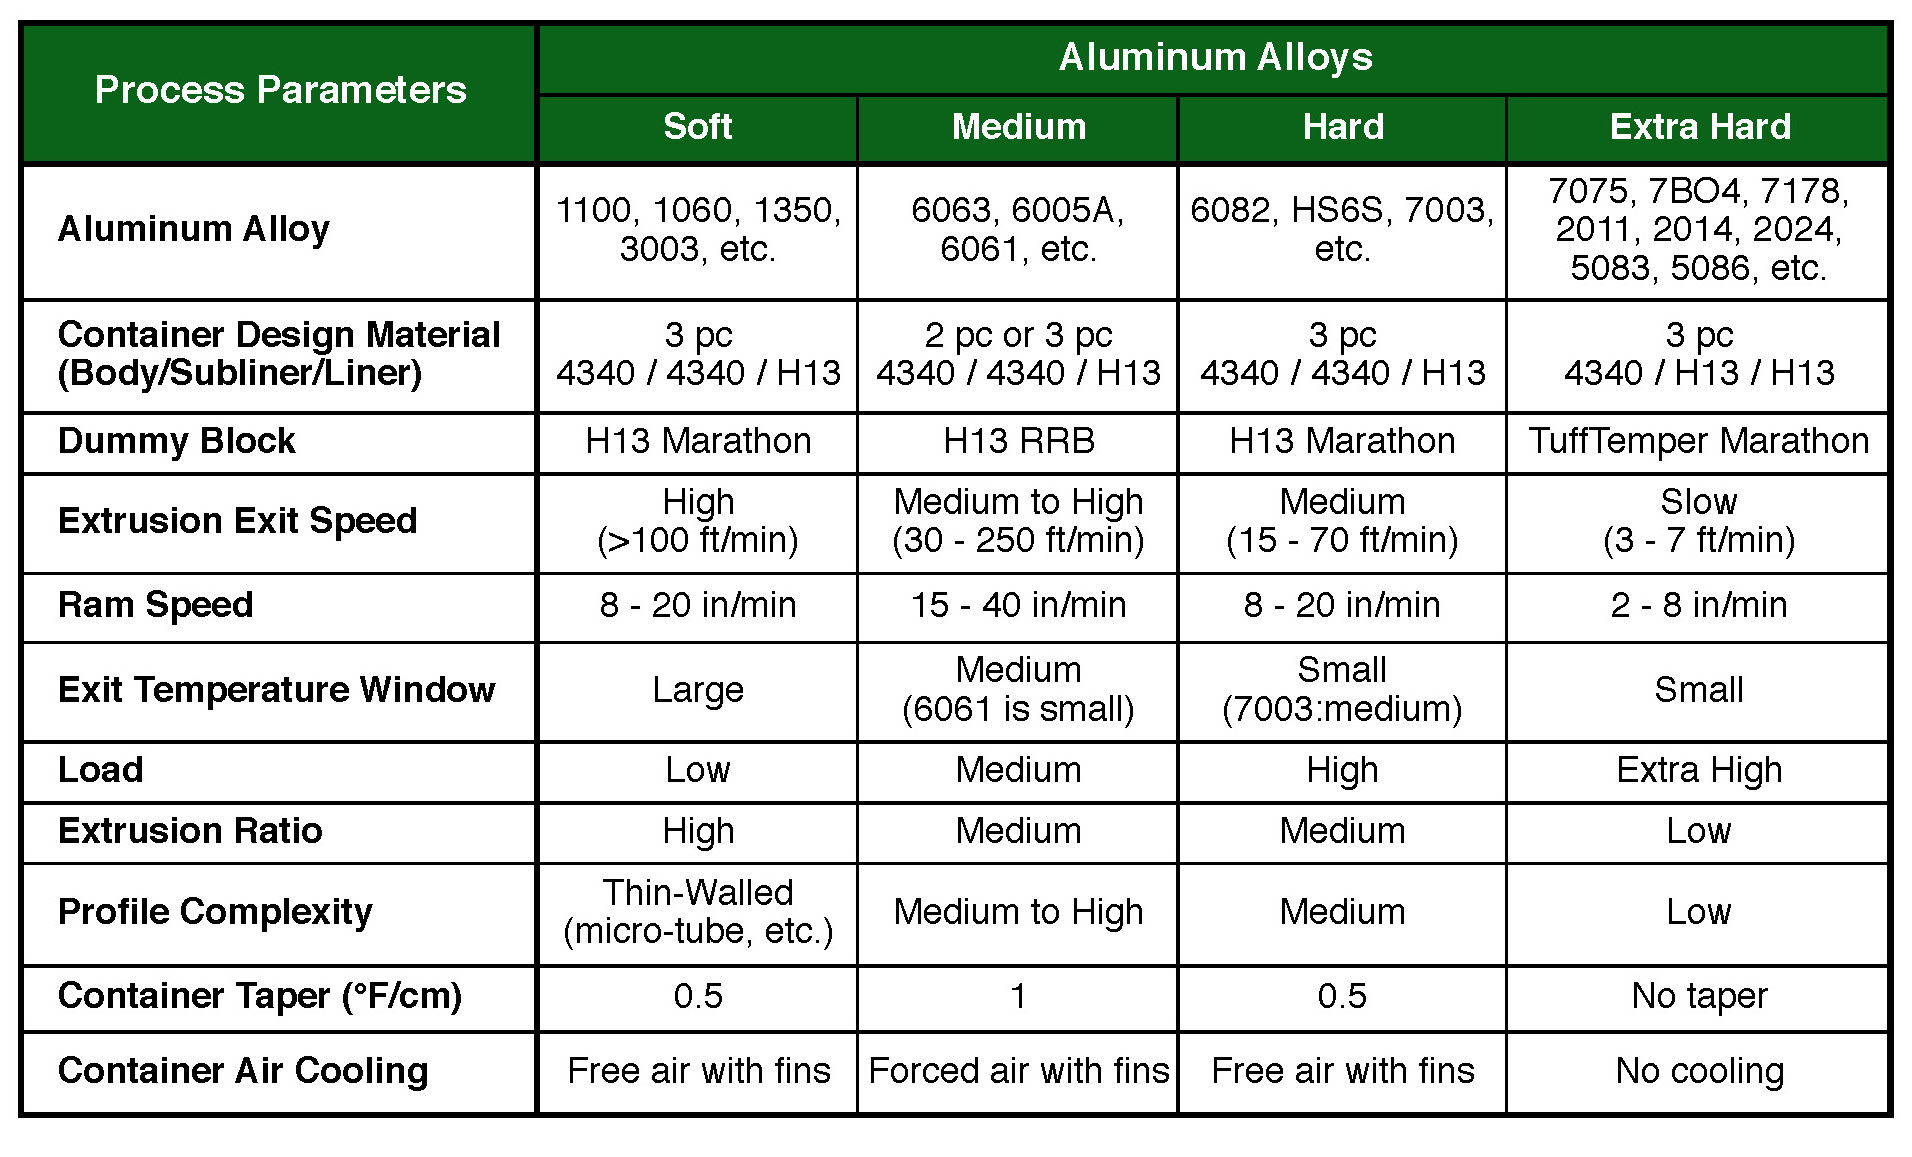 Table II. Recommended container and dummy block material, based on process parameters and categorized by extruded alloy.